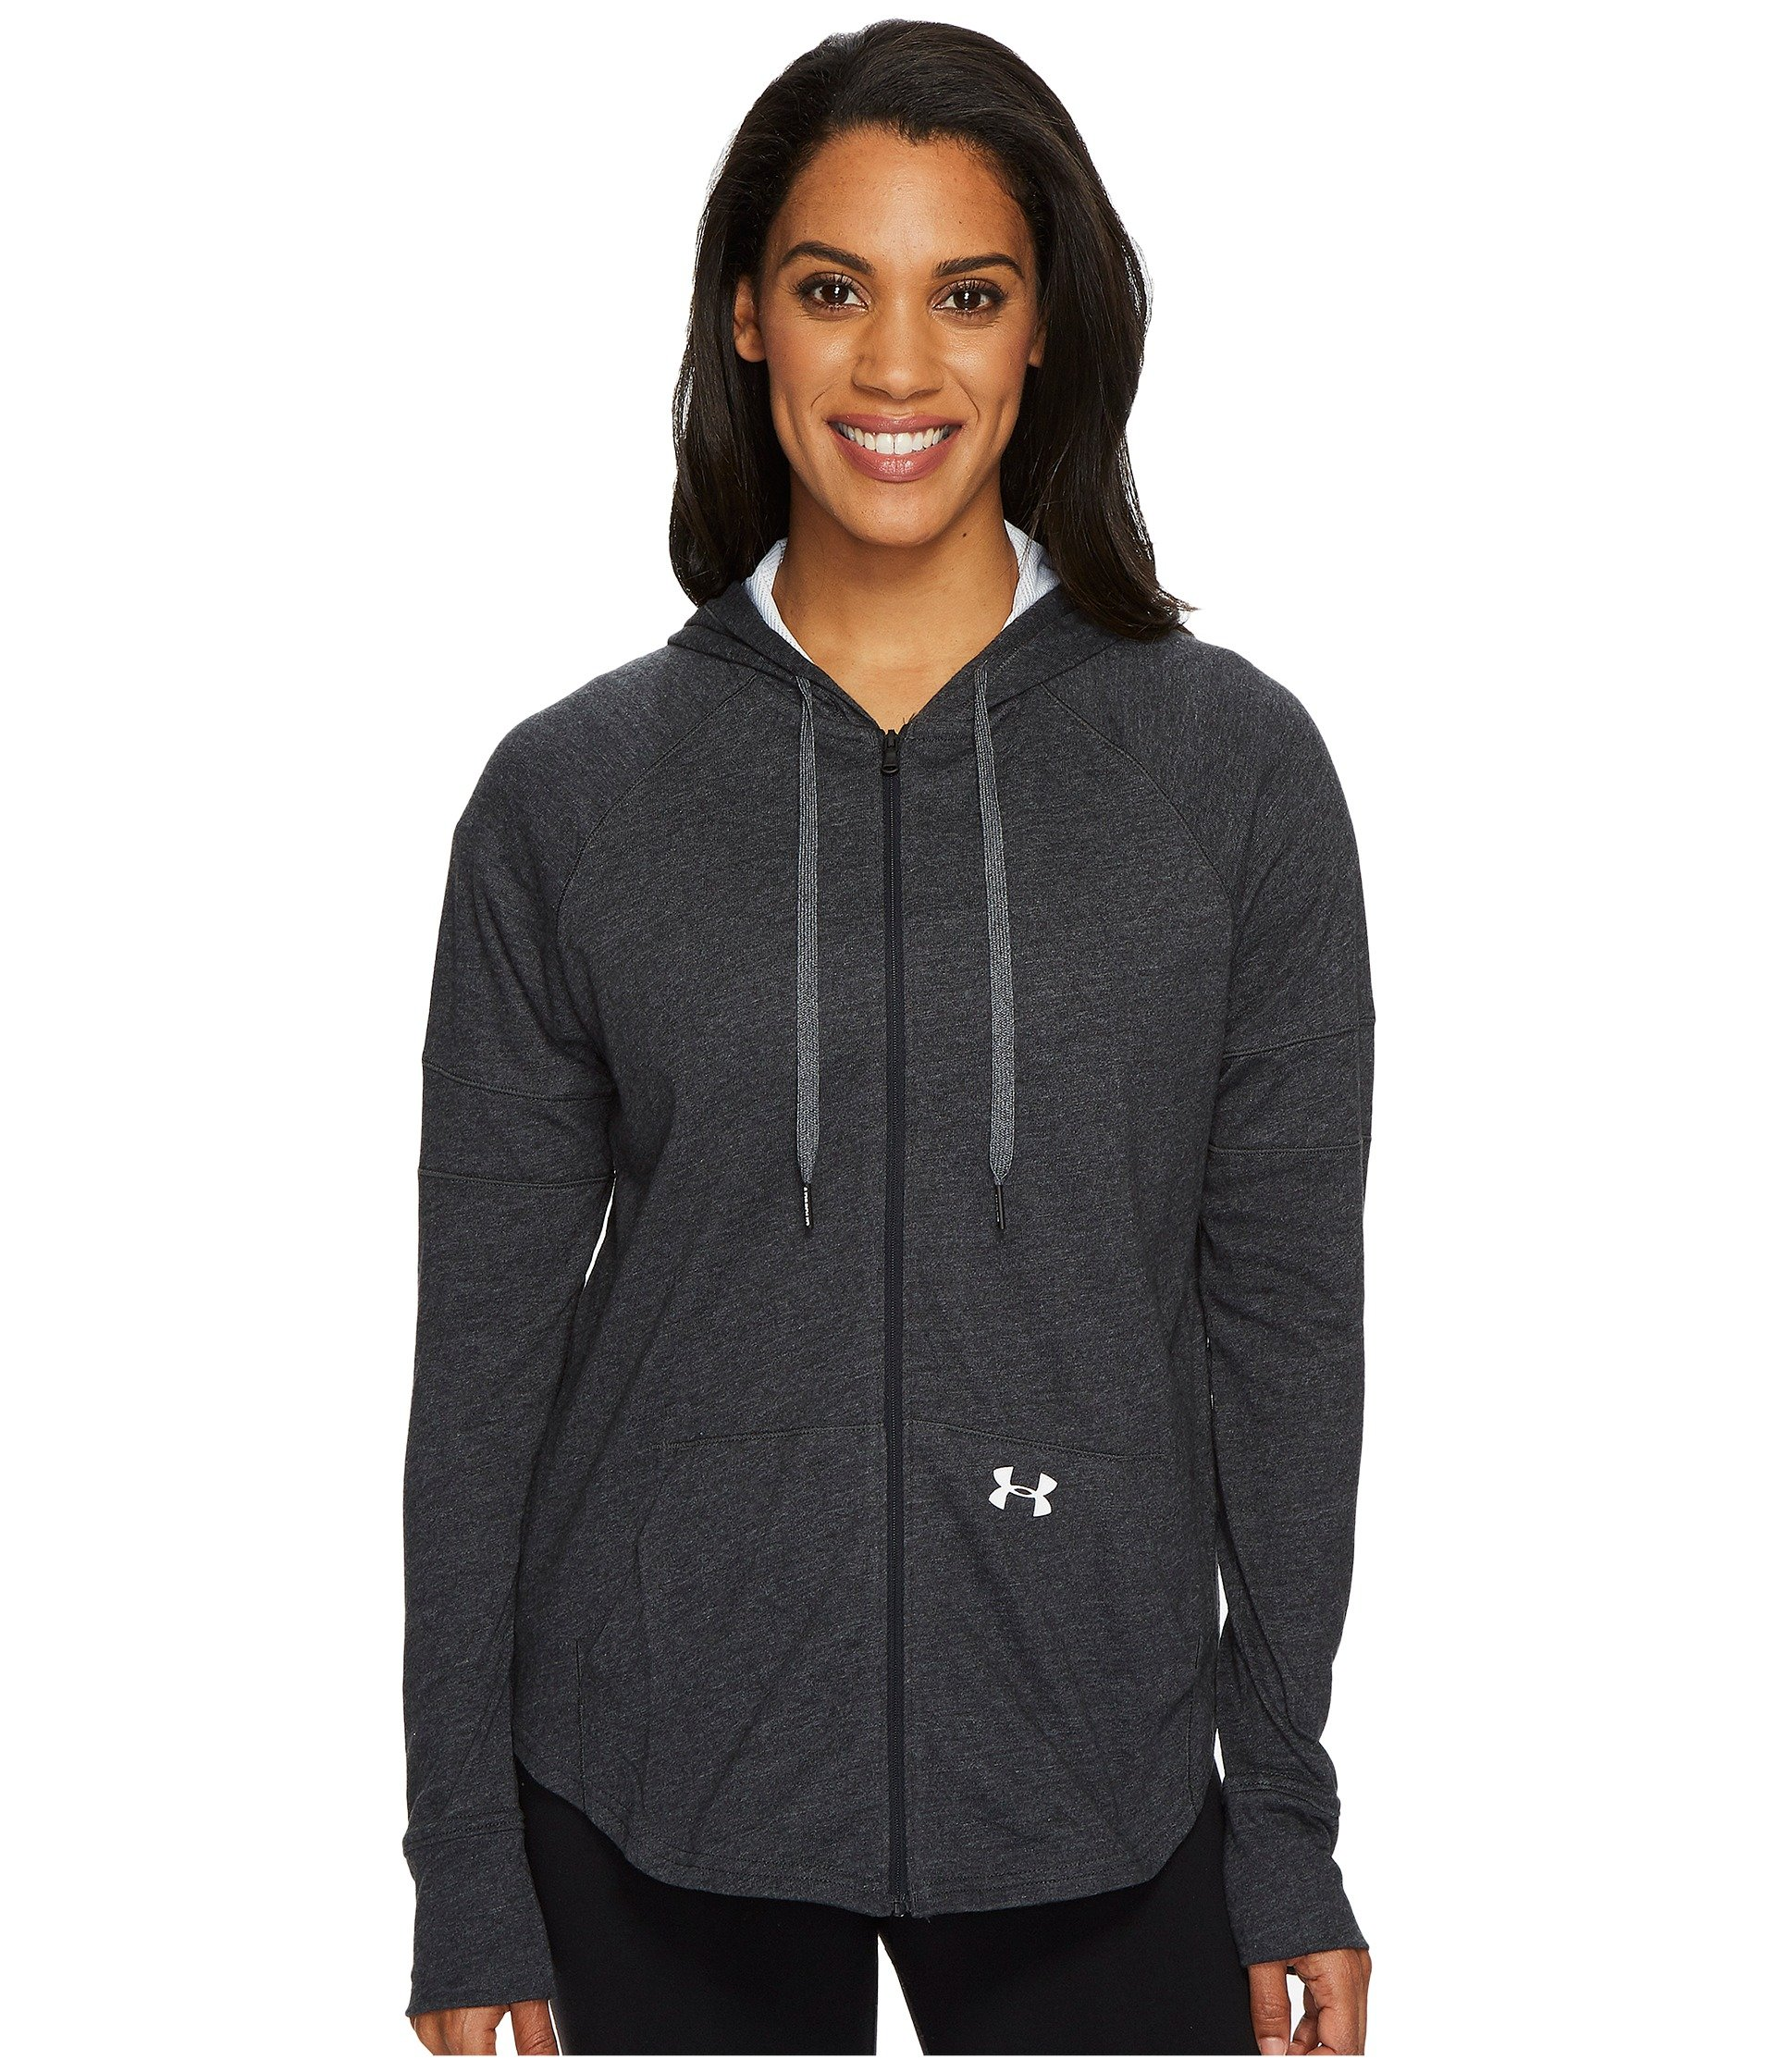 Under Armour Women's Sportstyle Full Zip Hoodie, Black (001)/Tonal, Large by Under Armour